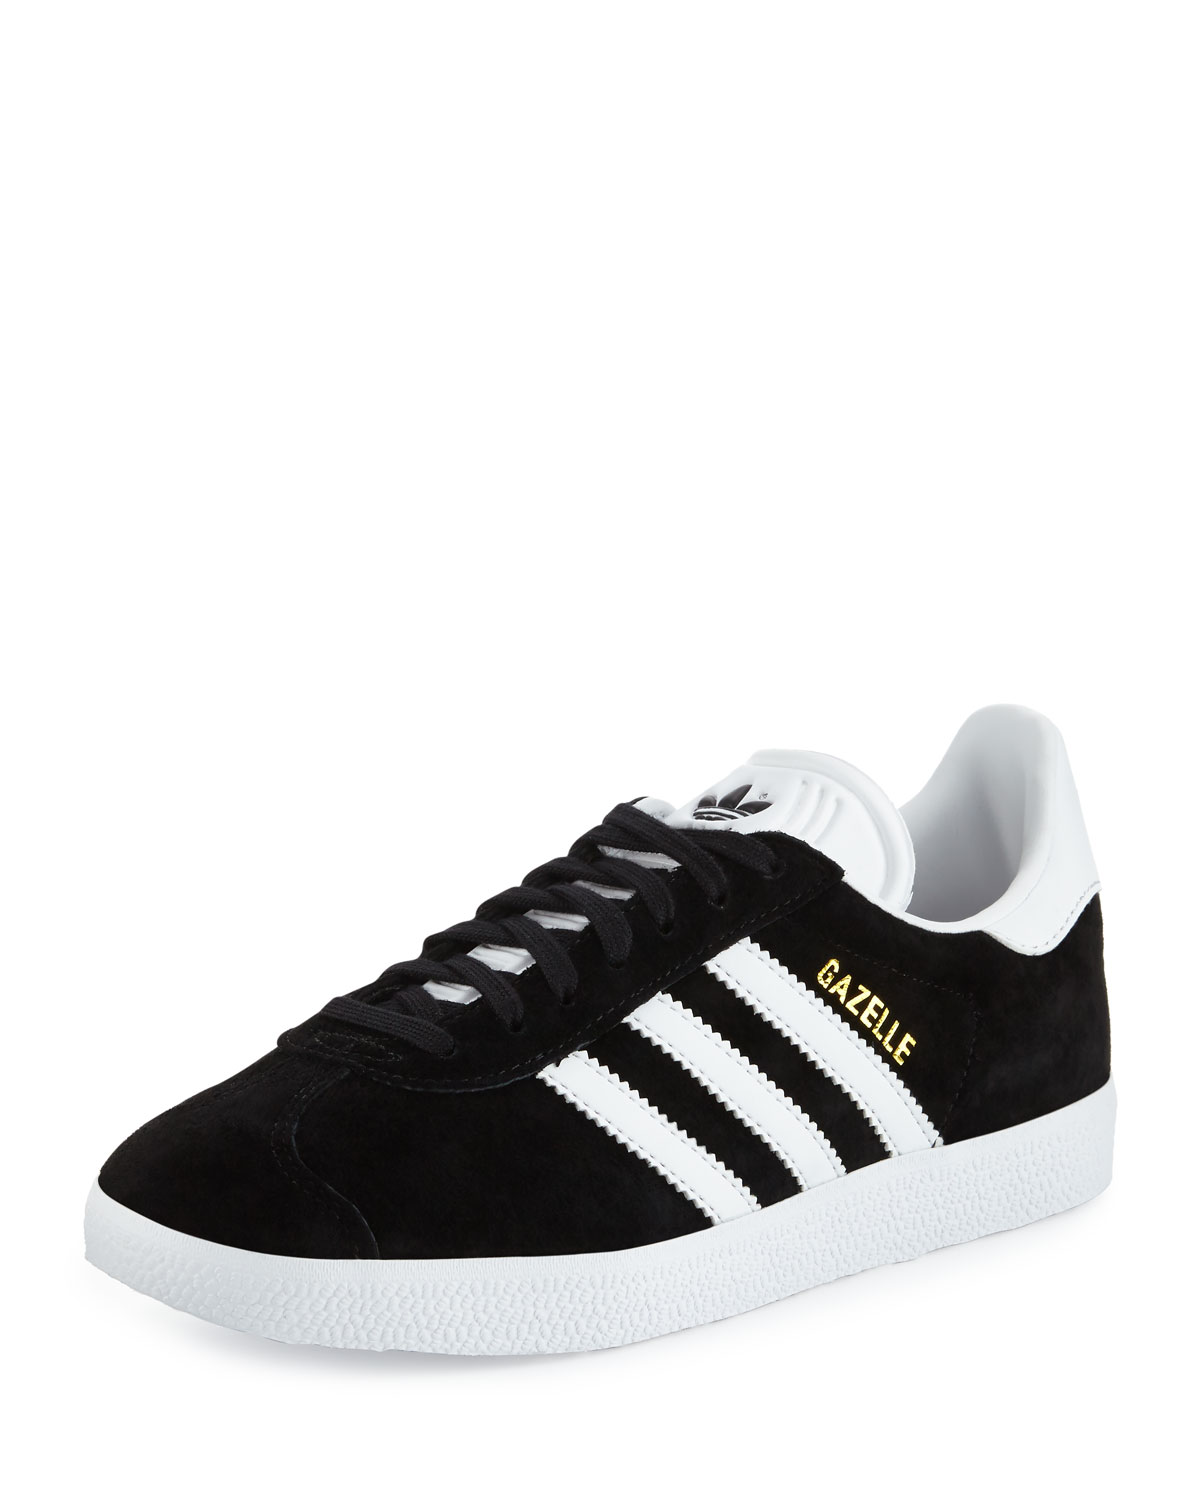 first look outlet store sale store Gazelle Original Suede Sneakers, Black/White